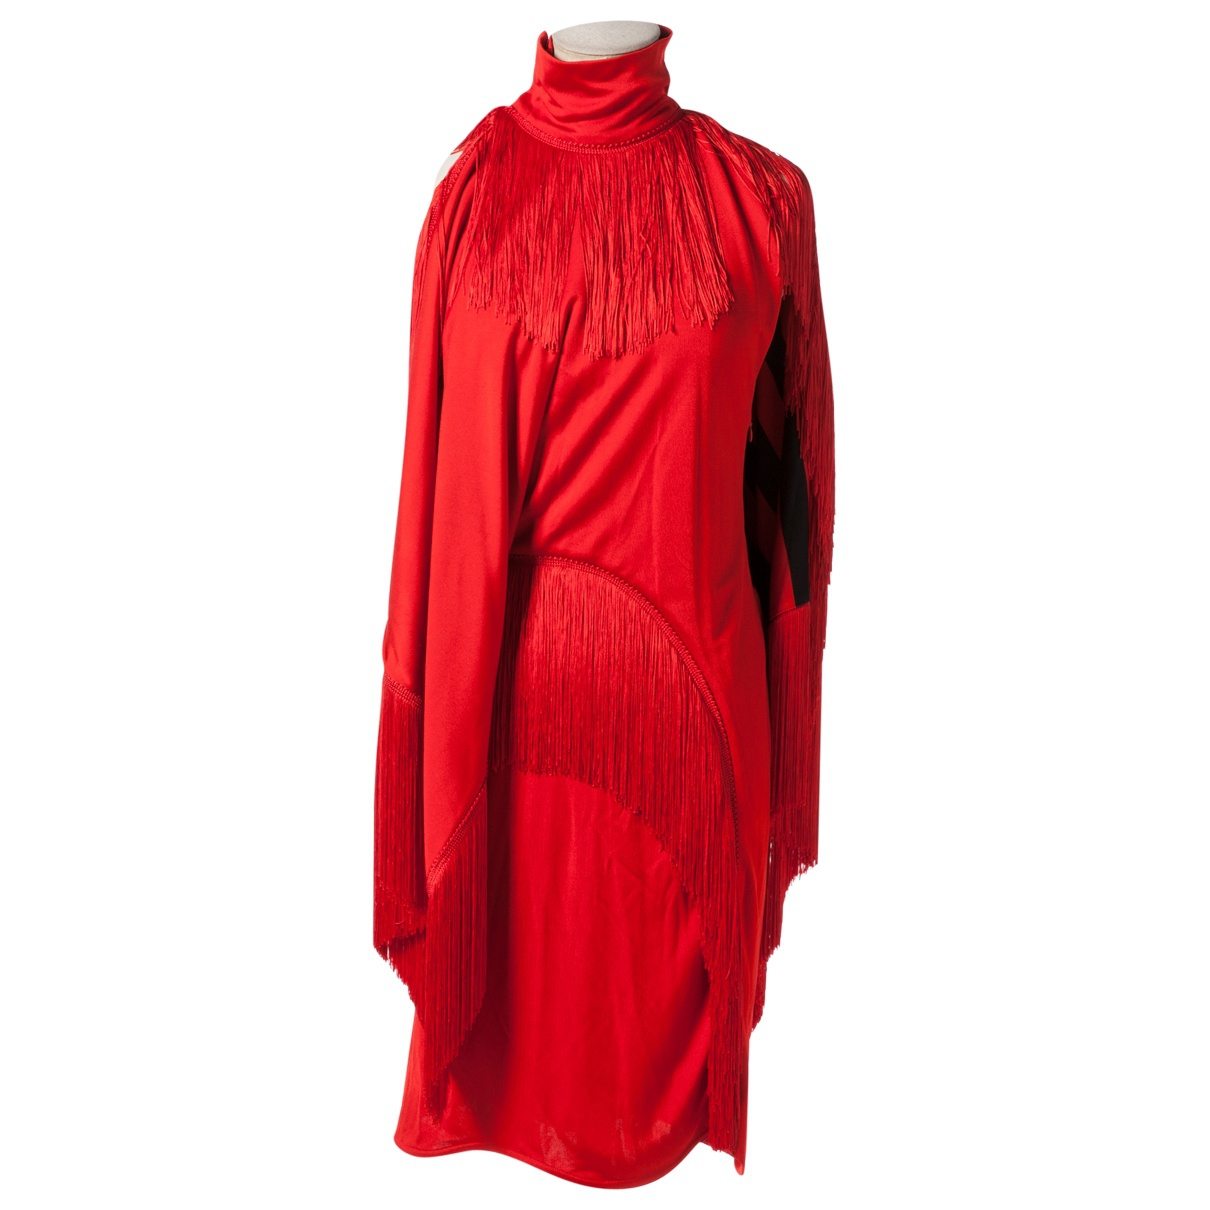 Givenchy \N Red dress for Women 38 FR